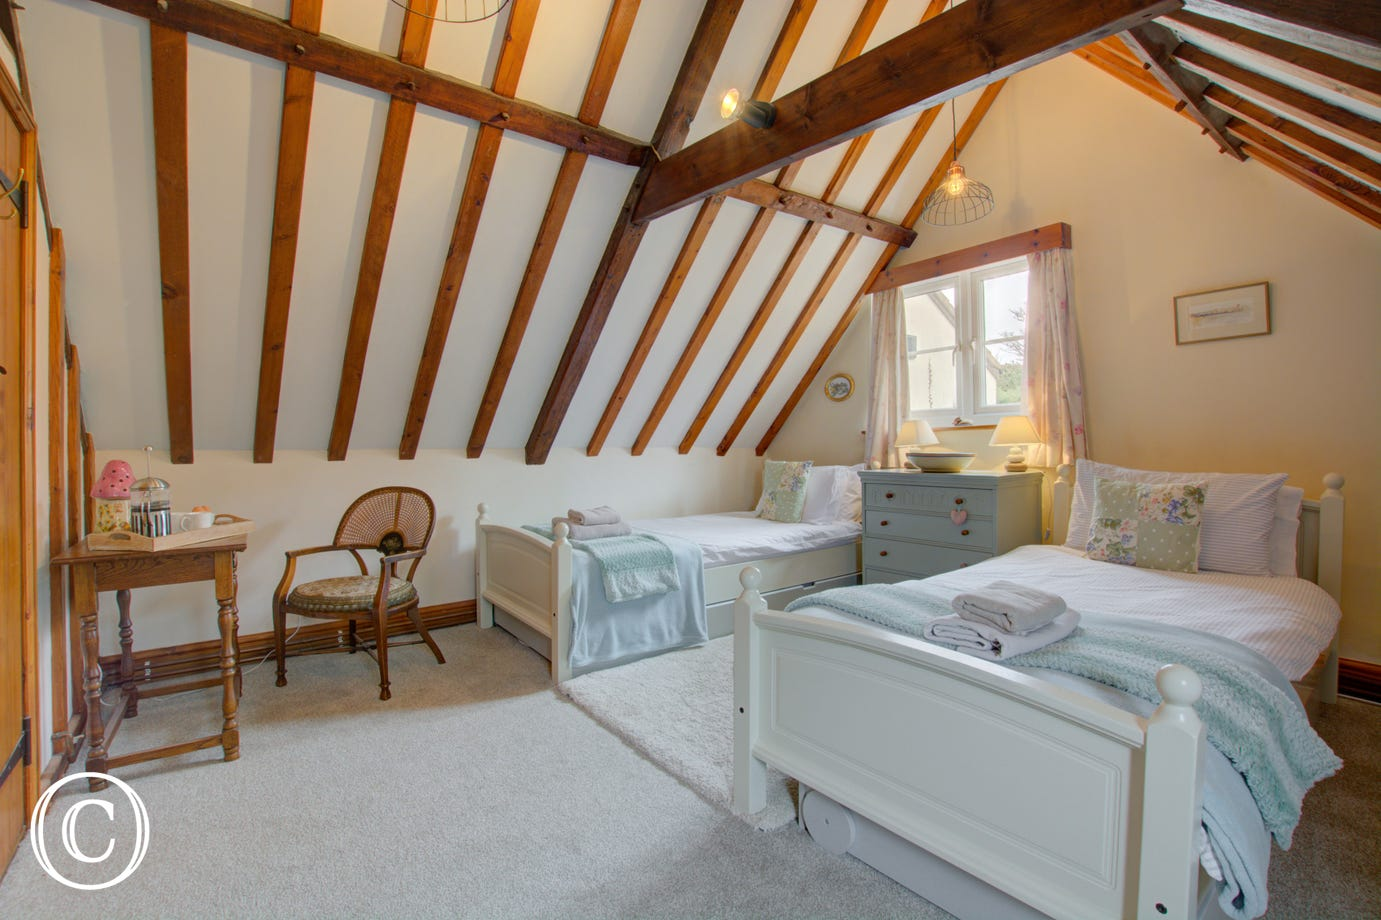 Bedroom two is another delightful room with rustic beams and has two single beds